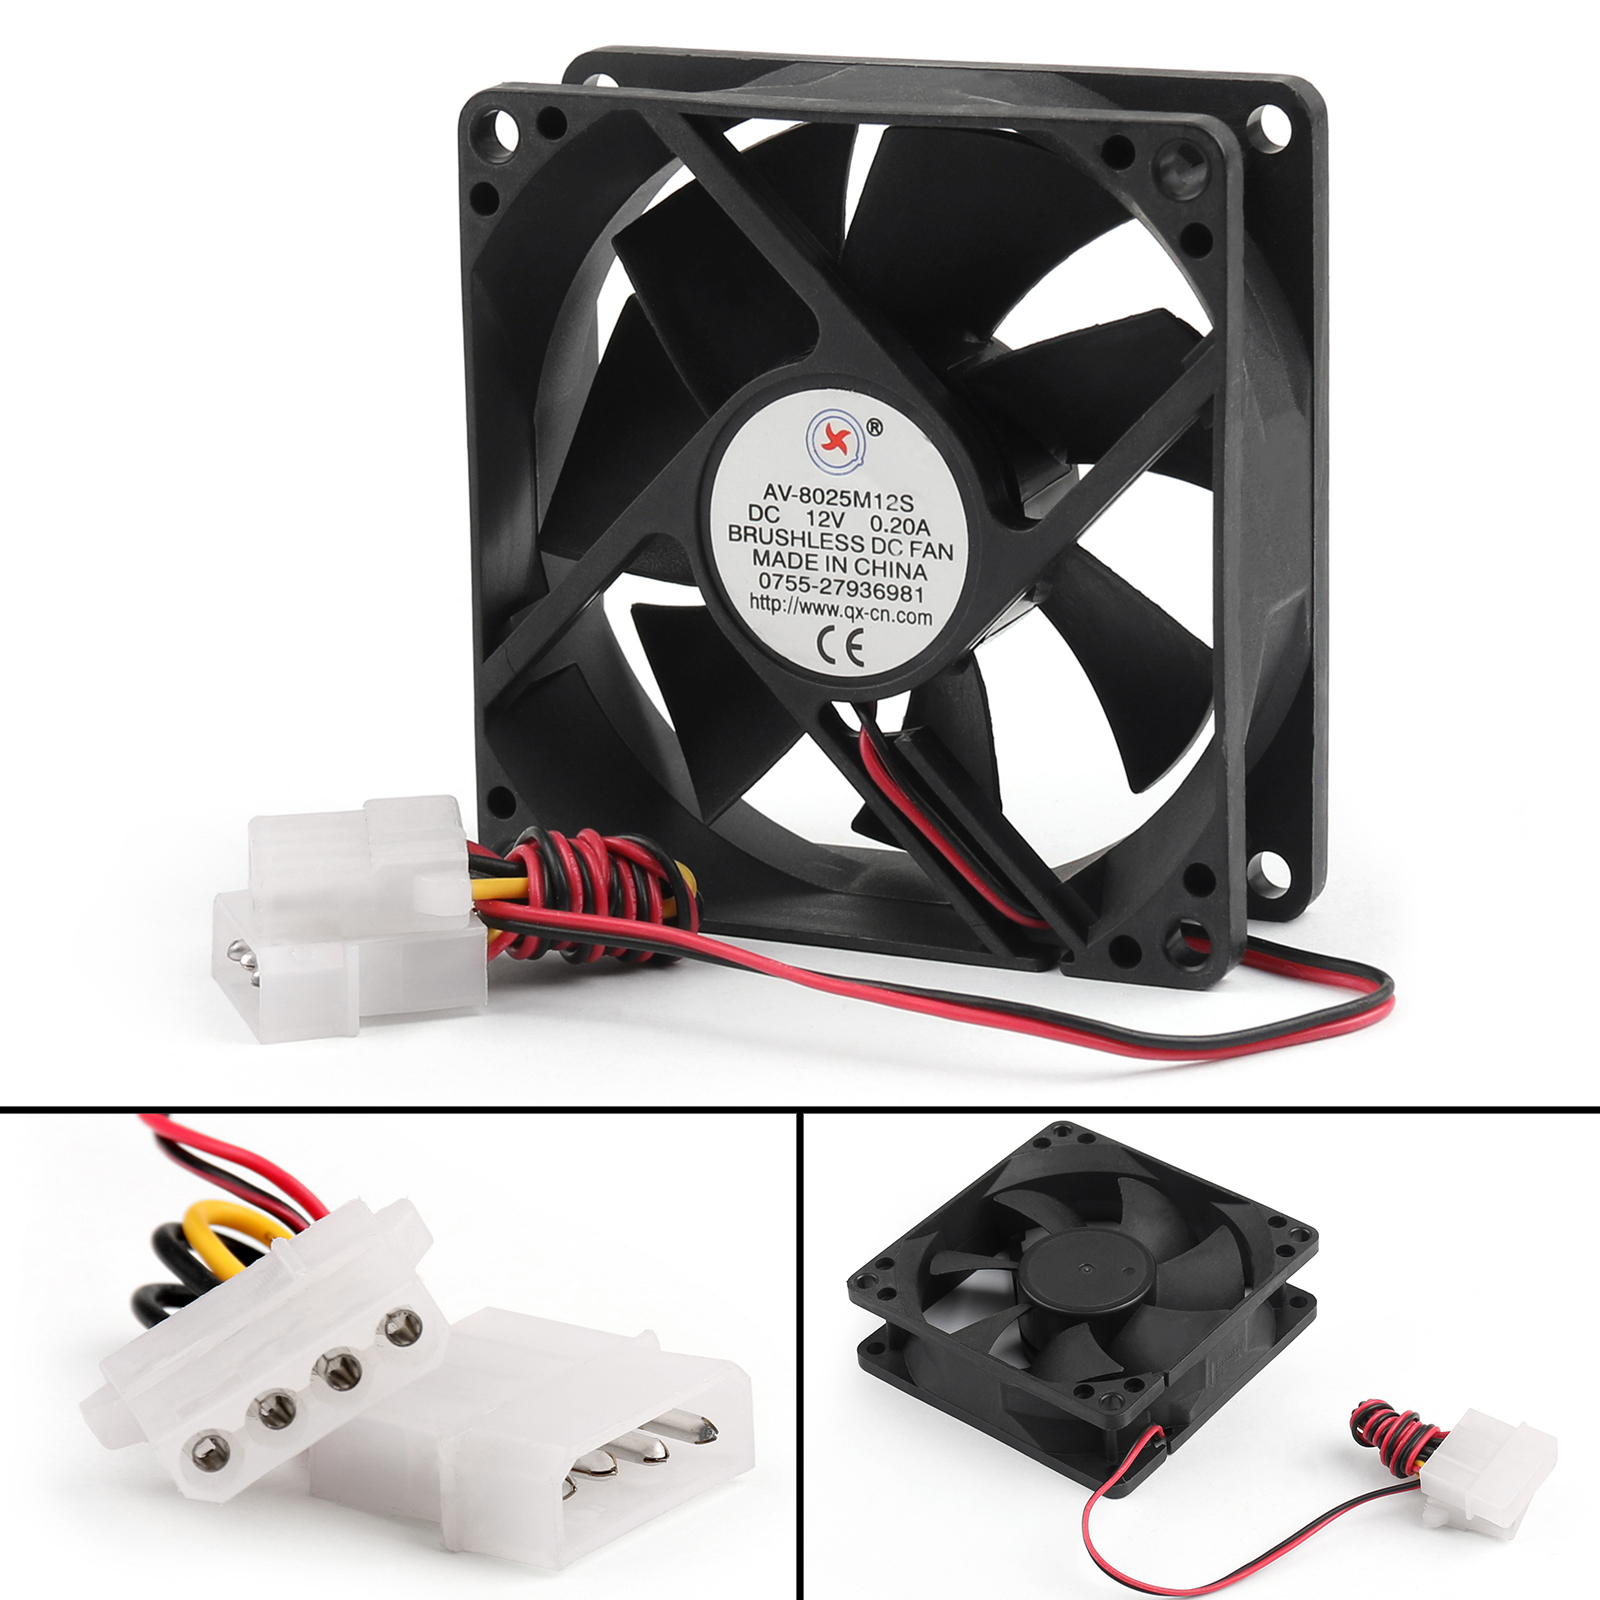 hight resolution of dc brushless cooling pc computer fan 12v 0 2a 8025s 80x80x25mm 4 pin dc 12v computer fan wiring